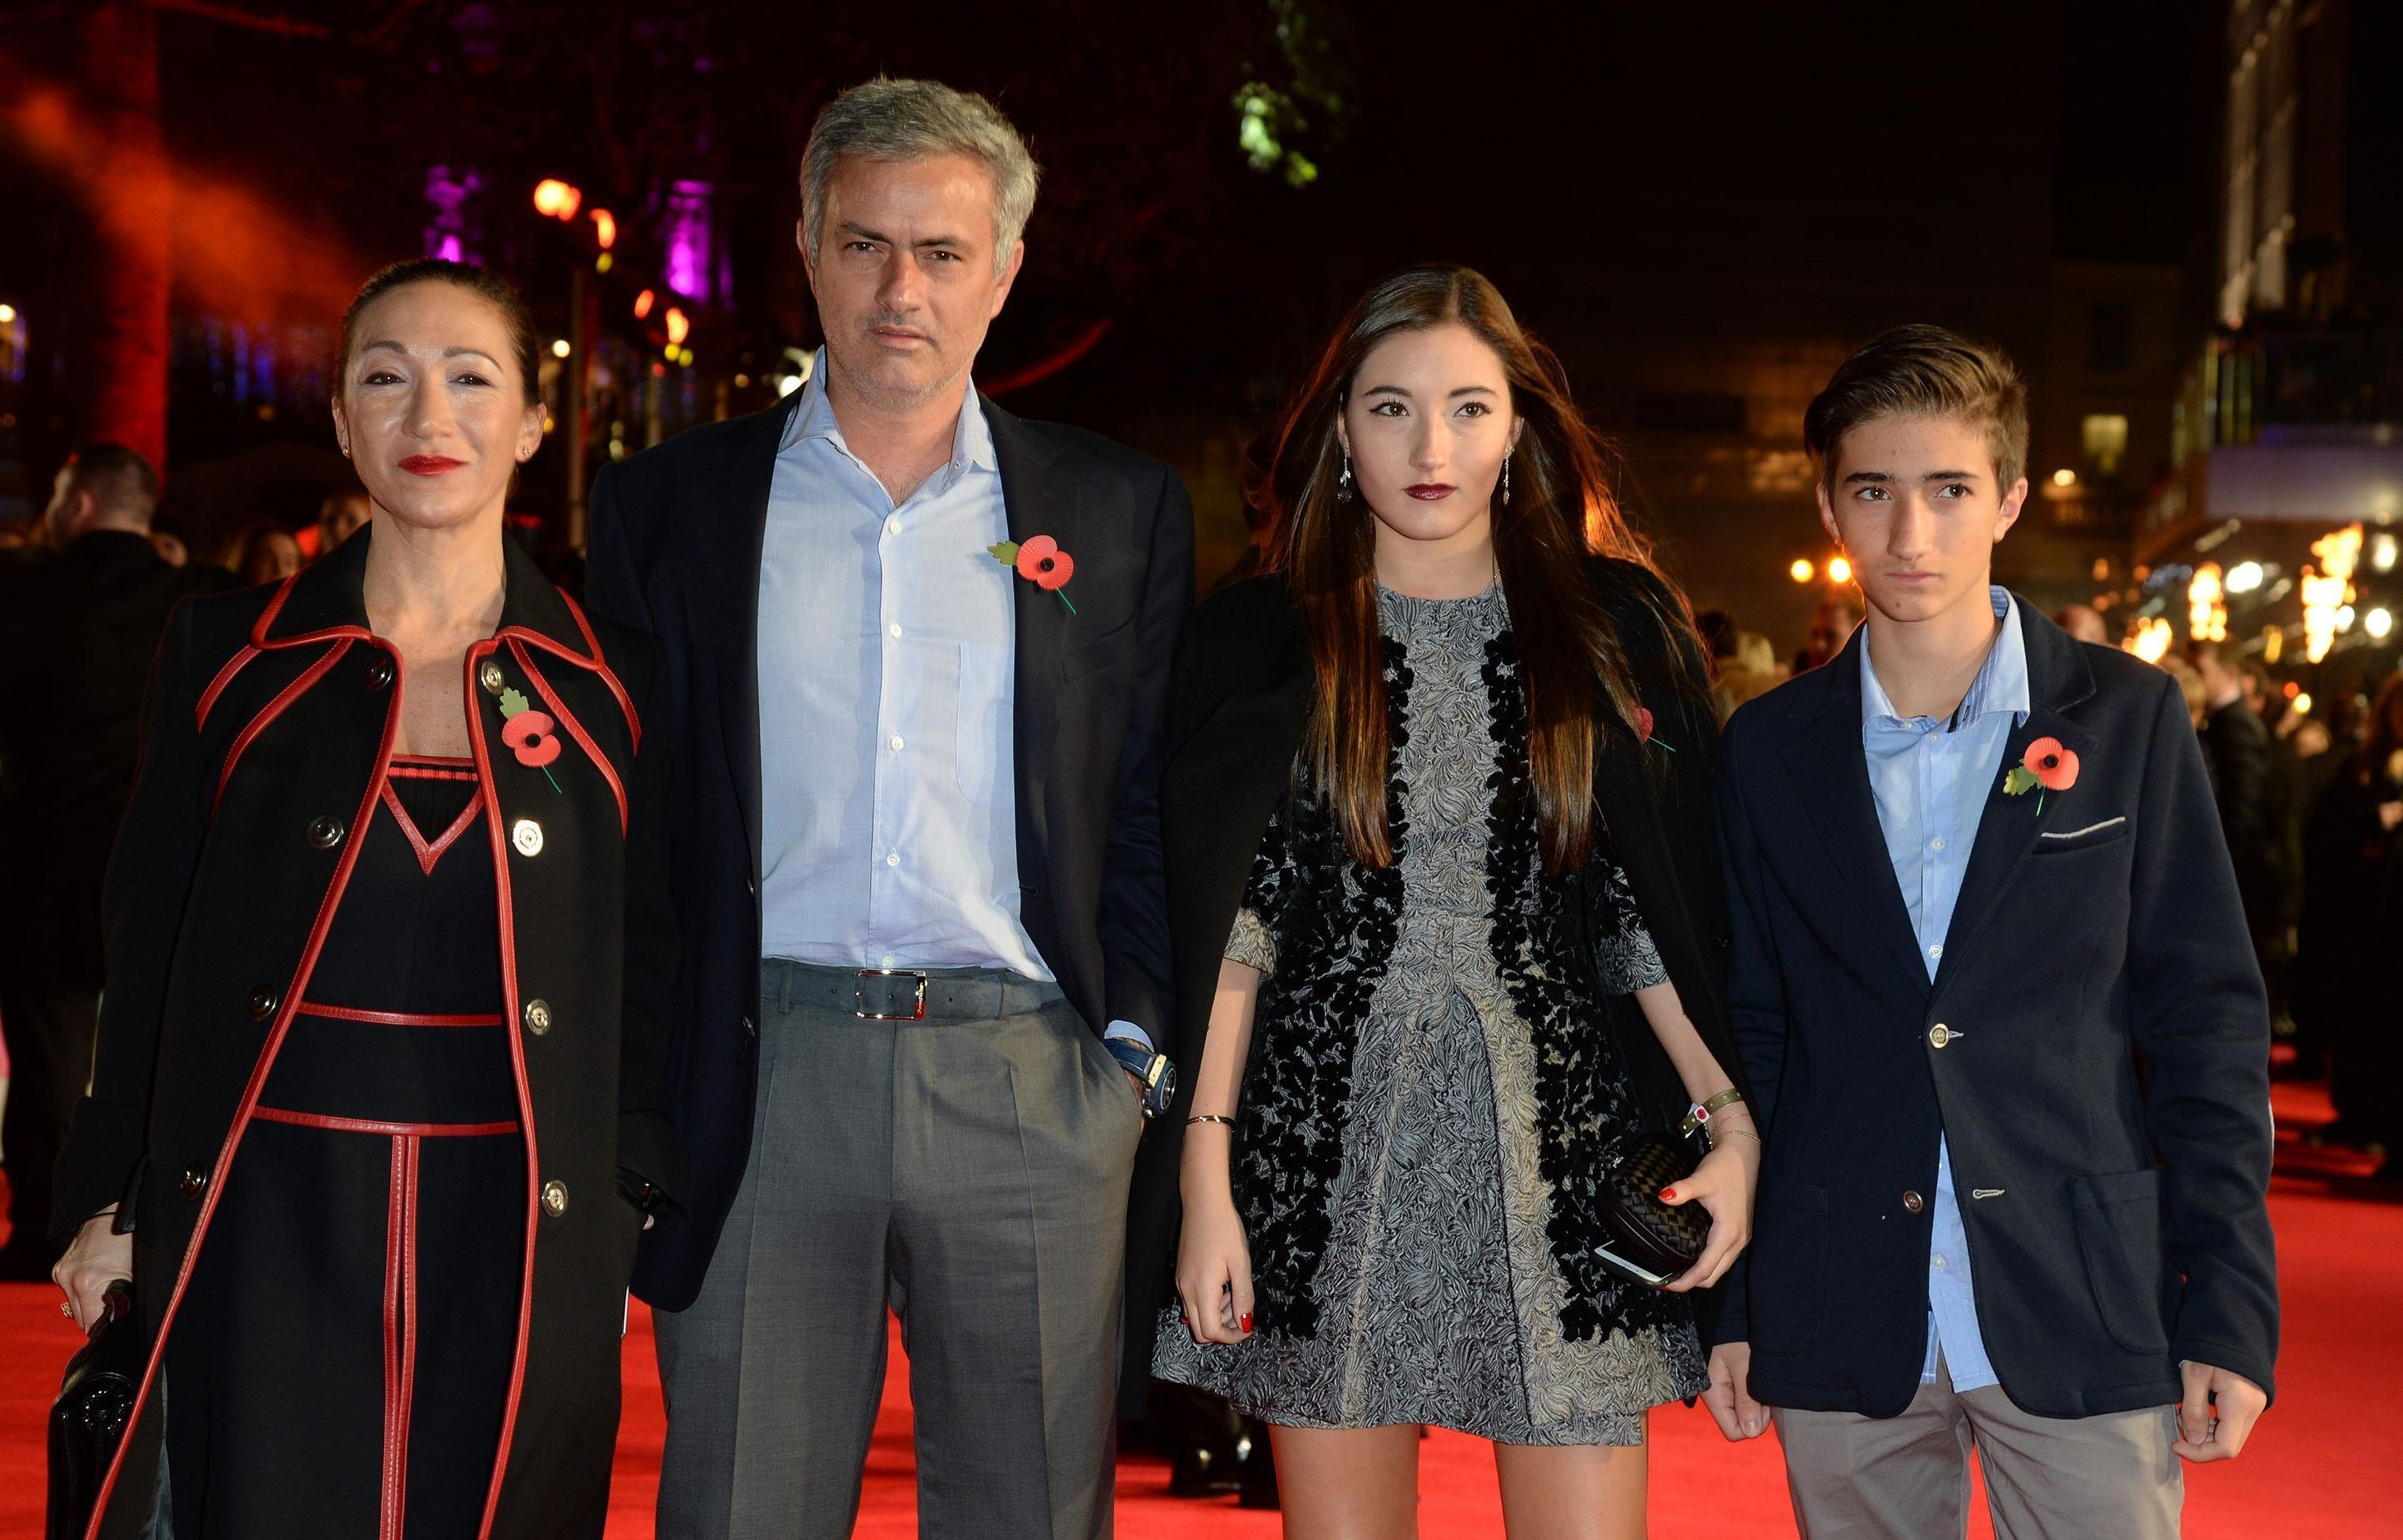 How old is Jose Mourinho, who is his wife Matilde Faria and how many children do they have?